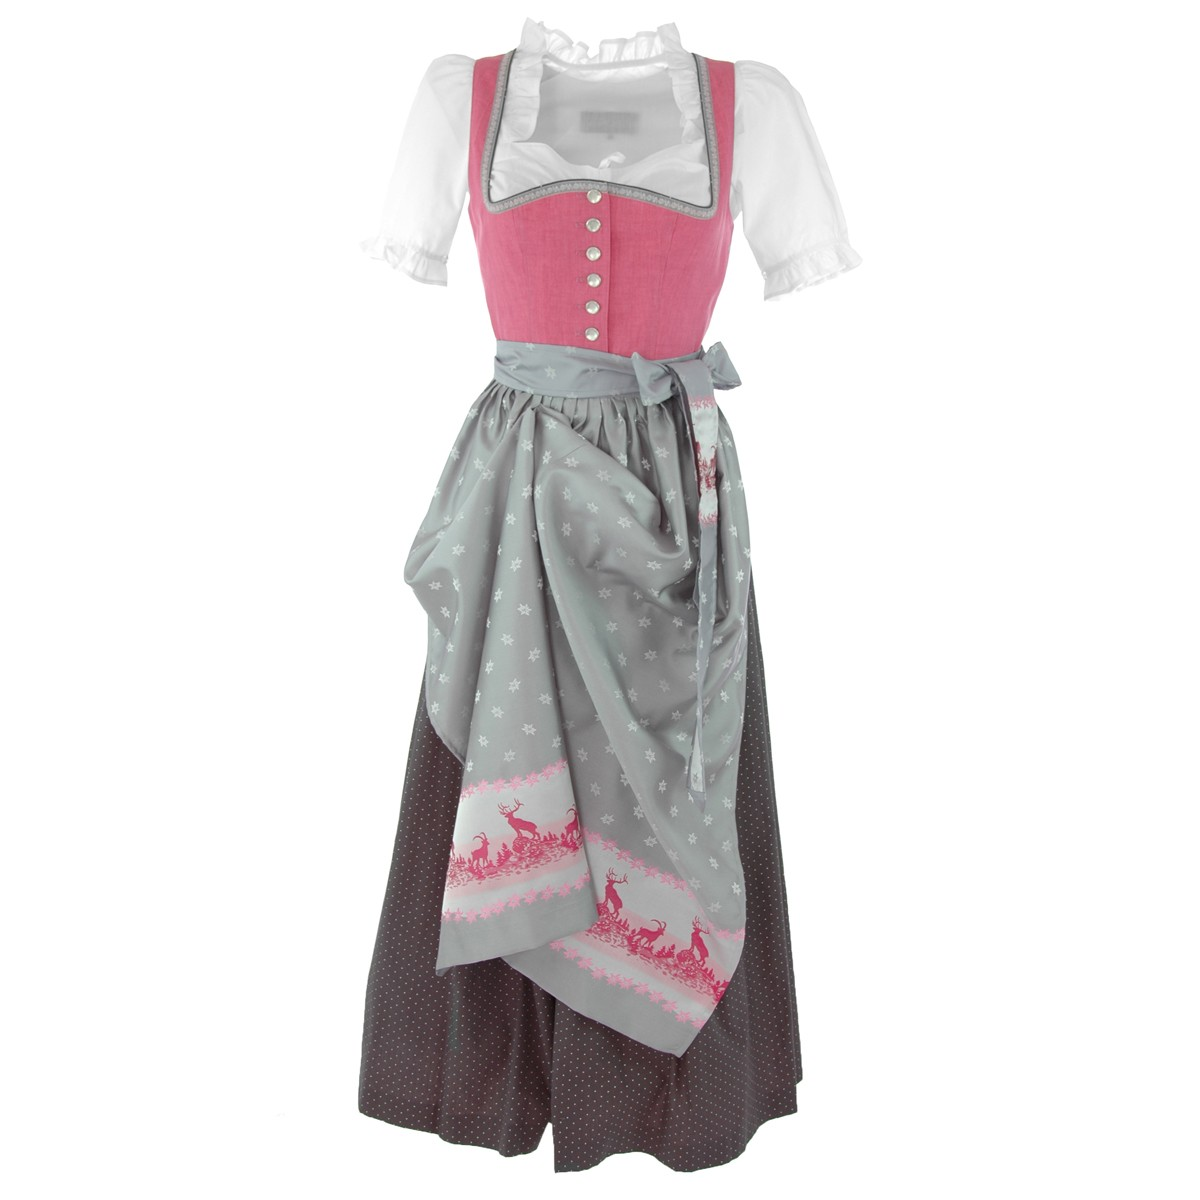 langes dirndl anna in pink silber von berwin und wolff ebay. Black Bedroom Furniture Sets. Home Design Ideas